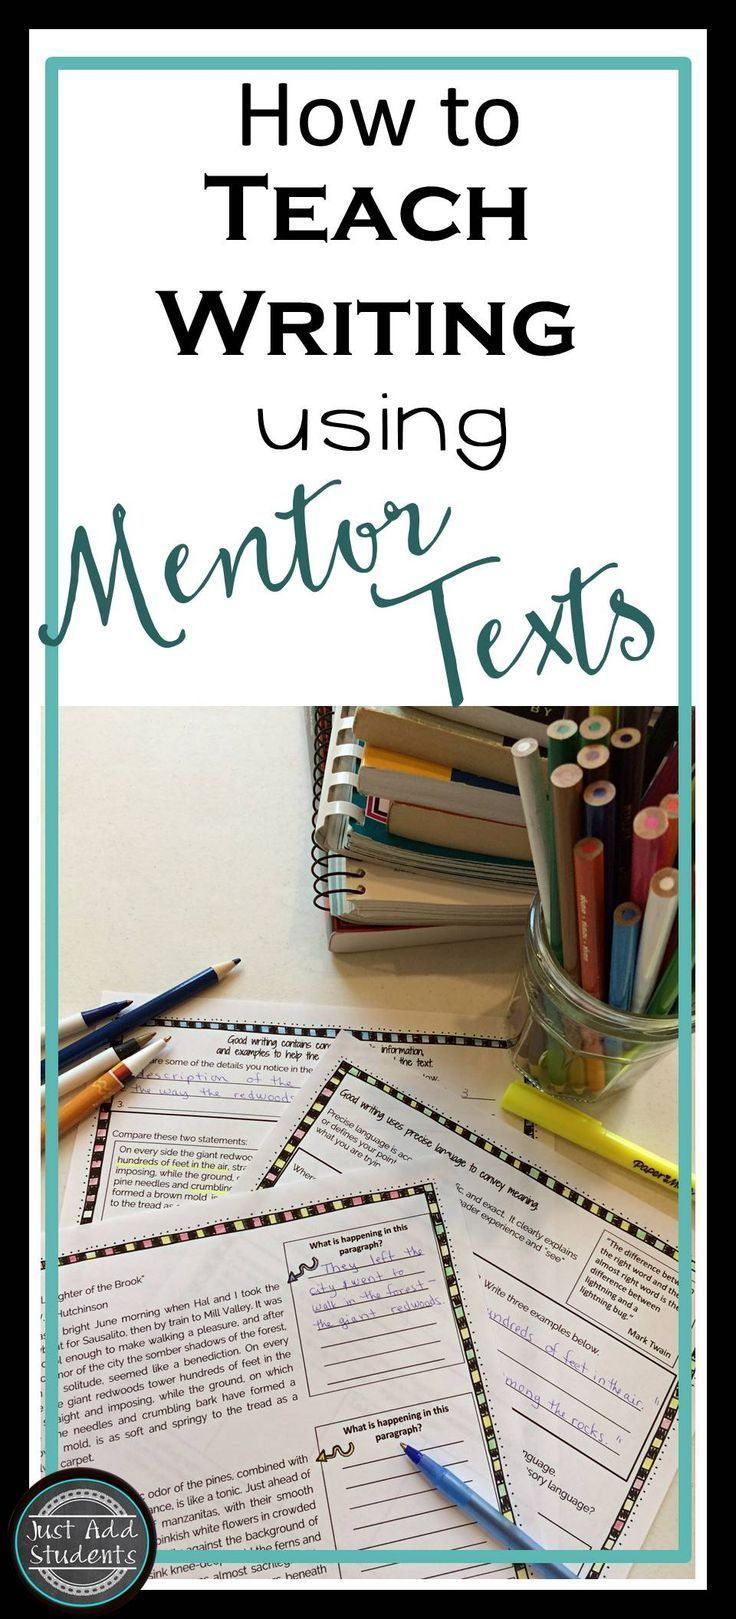 using mentor texts to teach writing mentor texts writing skills  use mentor texts to show students what good writing is when students analyze texts